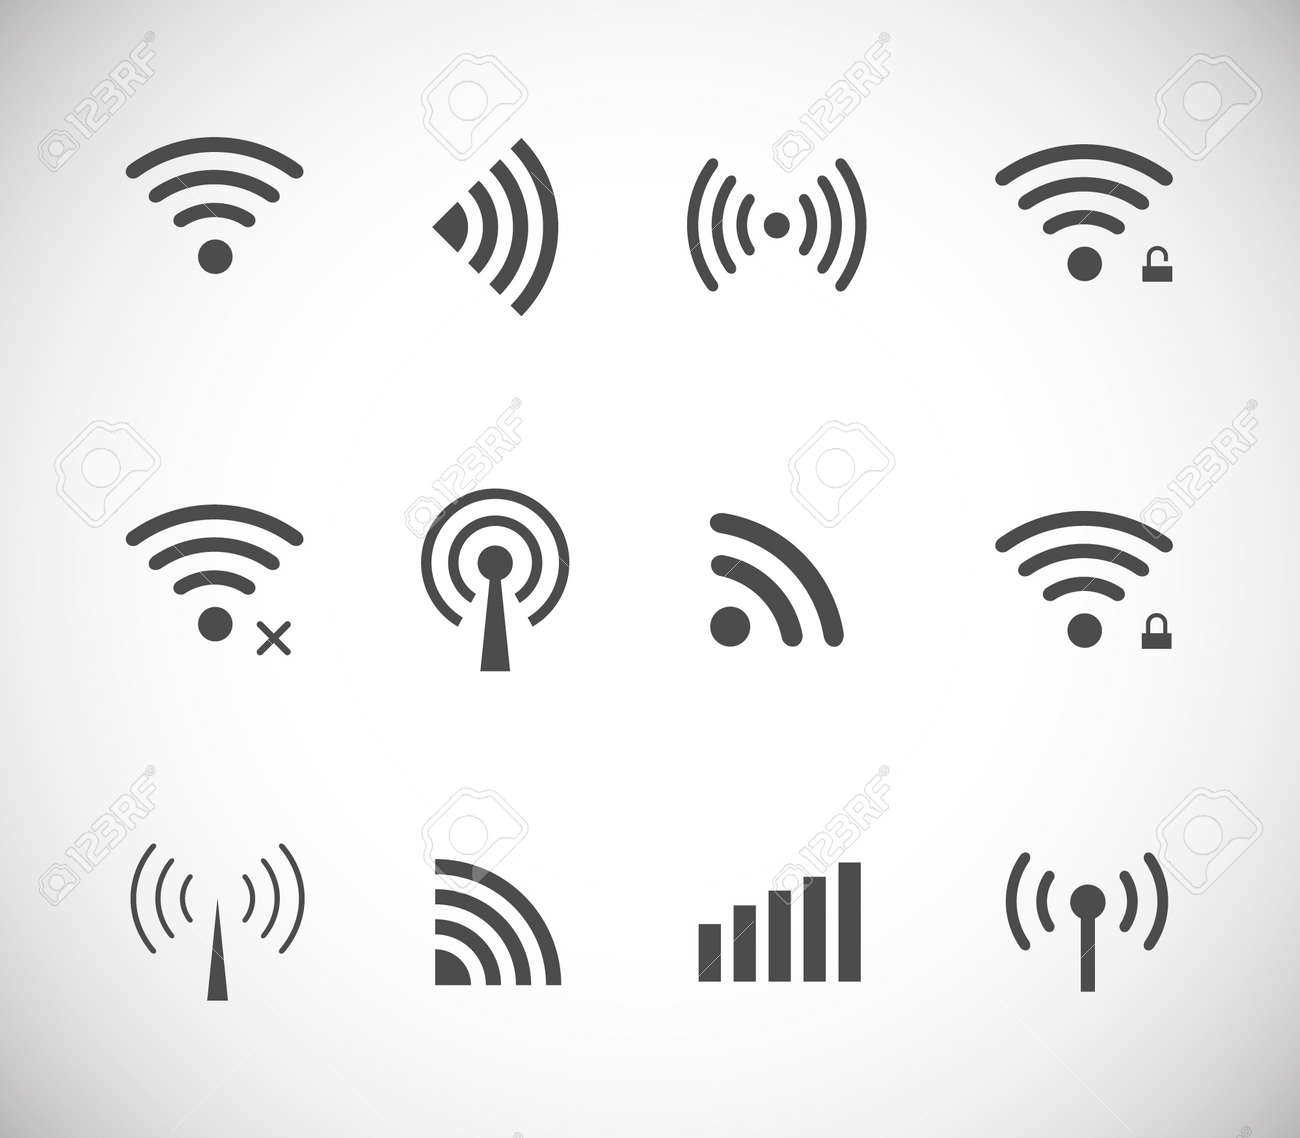 Set of different black vector wireless and wifi icons for remote access and communication via radio waves - 39711346